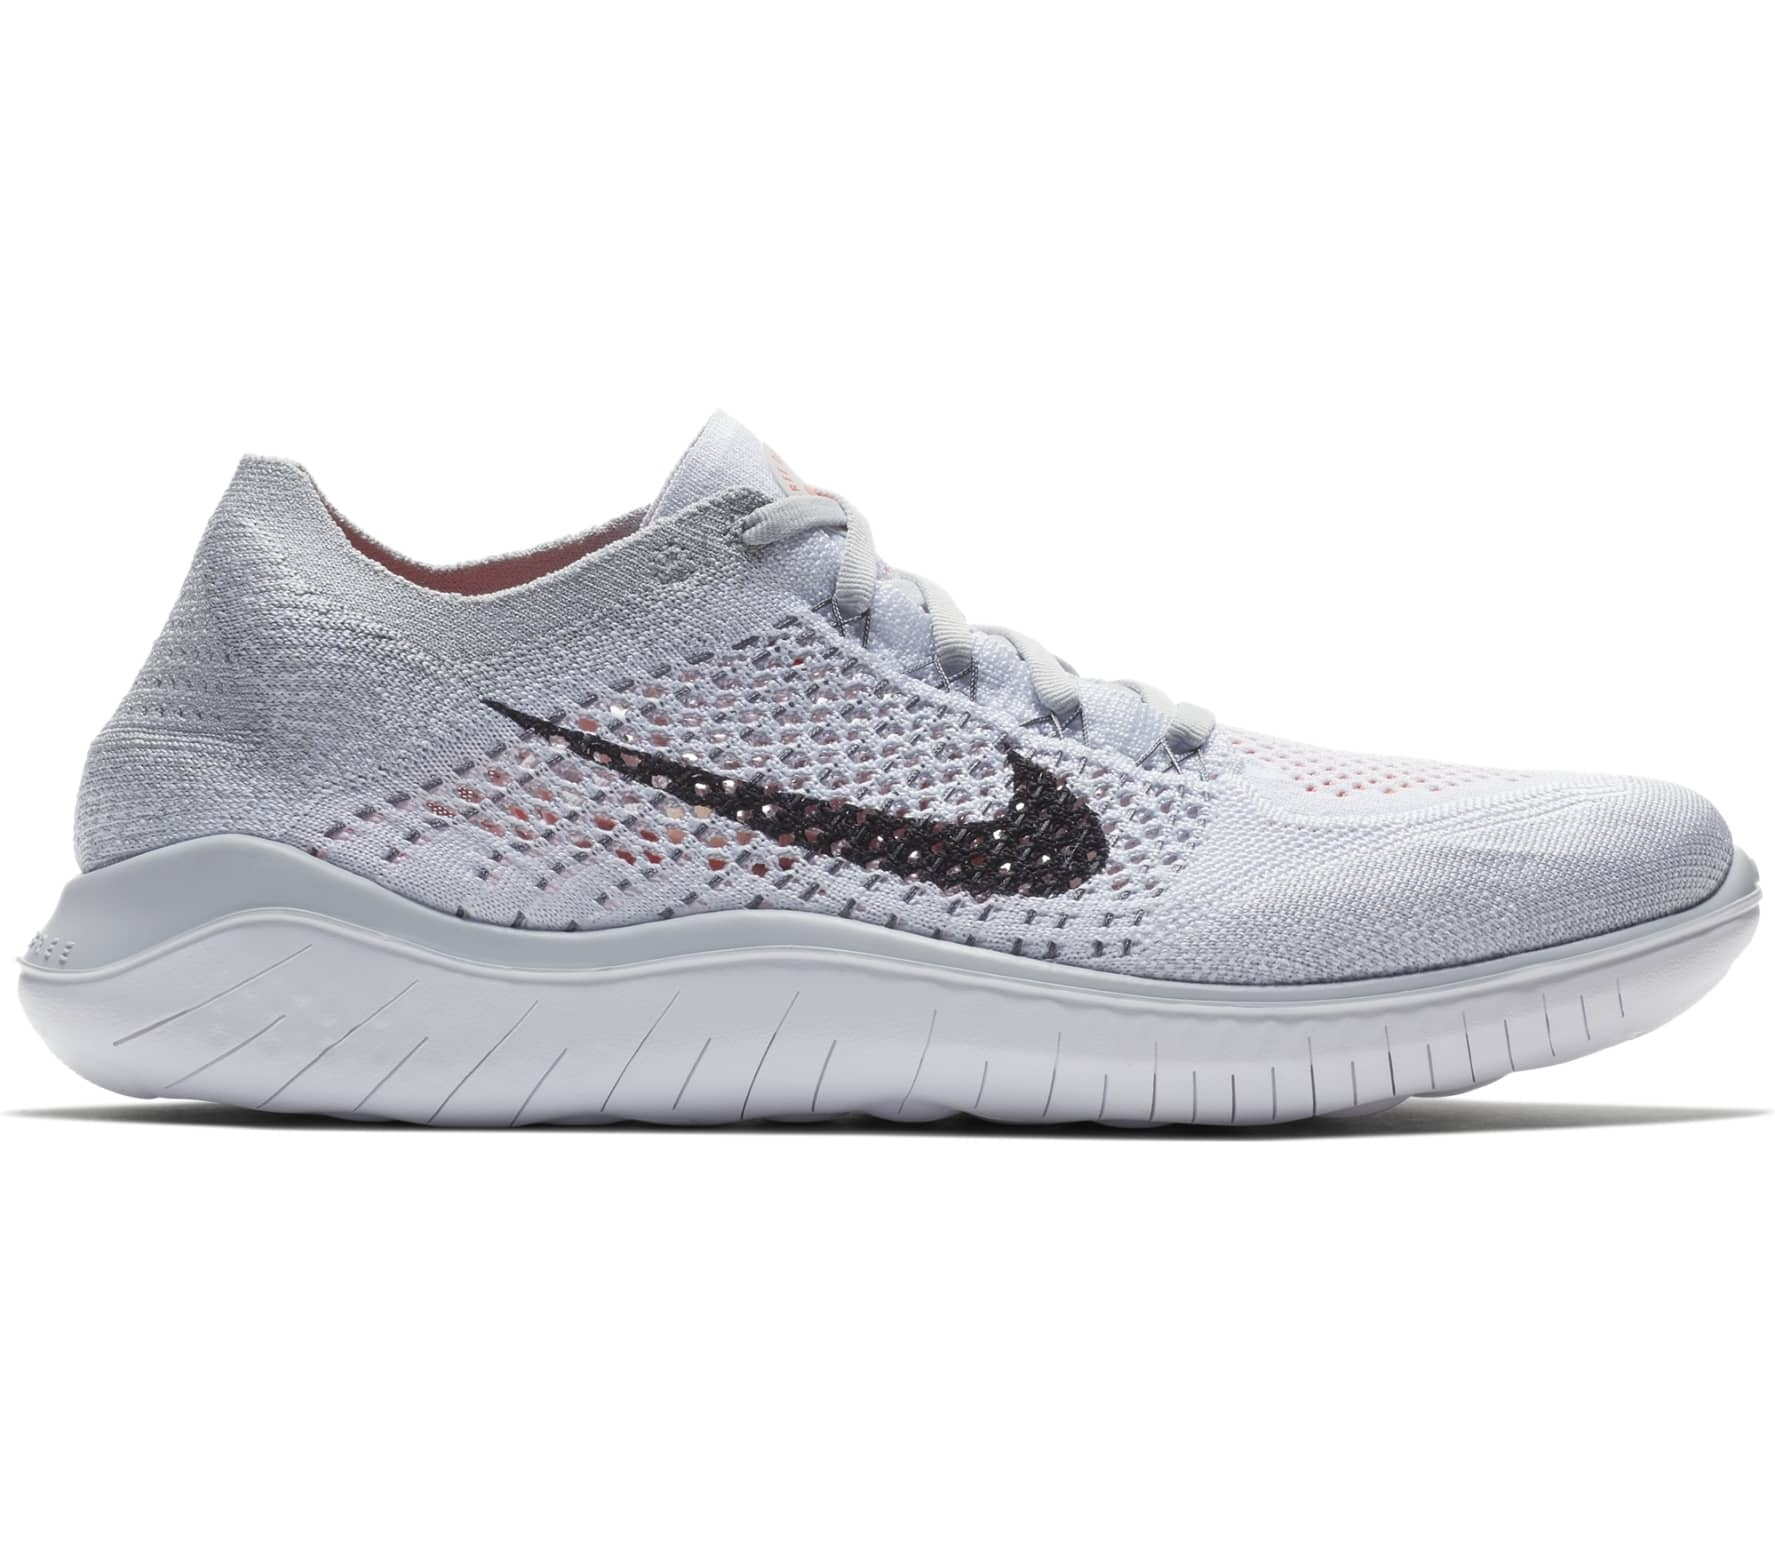 9f1ad763d2a Nike - Free RN Flyknit 2018 men s running shoes (light grey) - buy ...